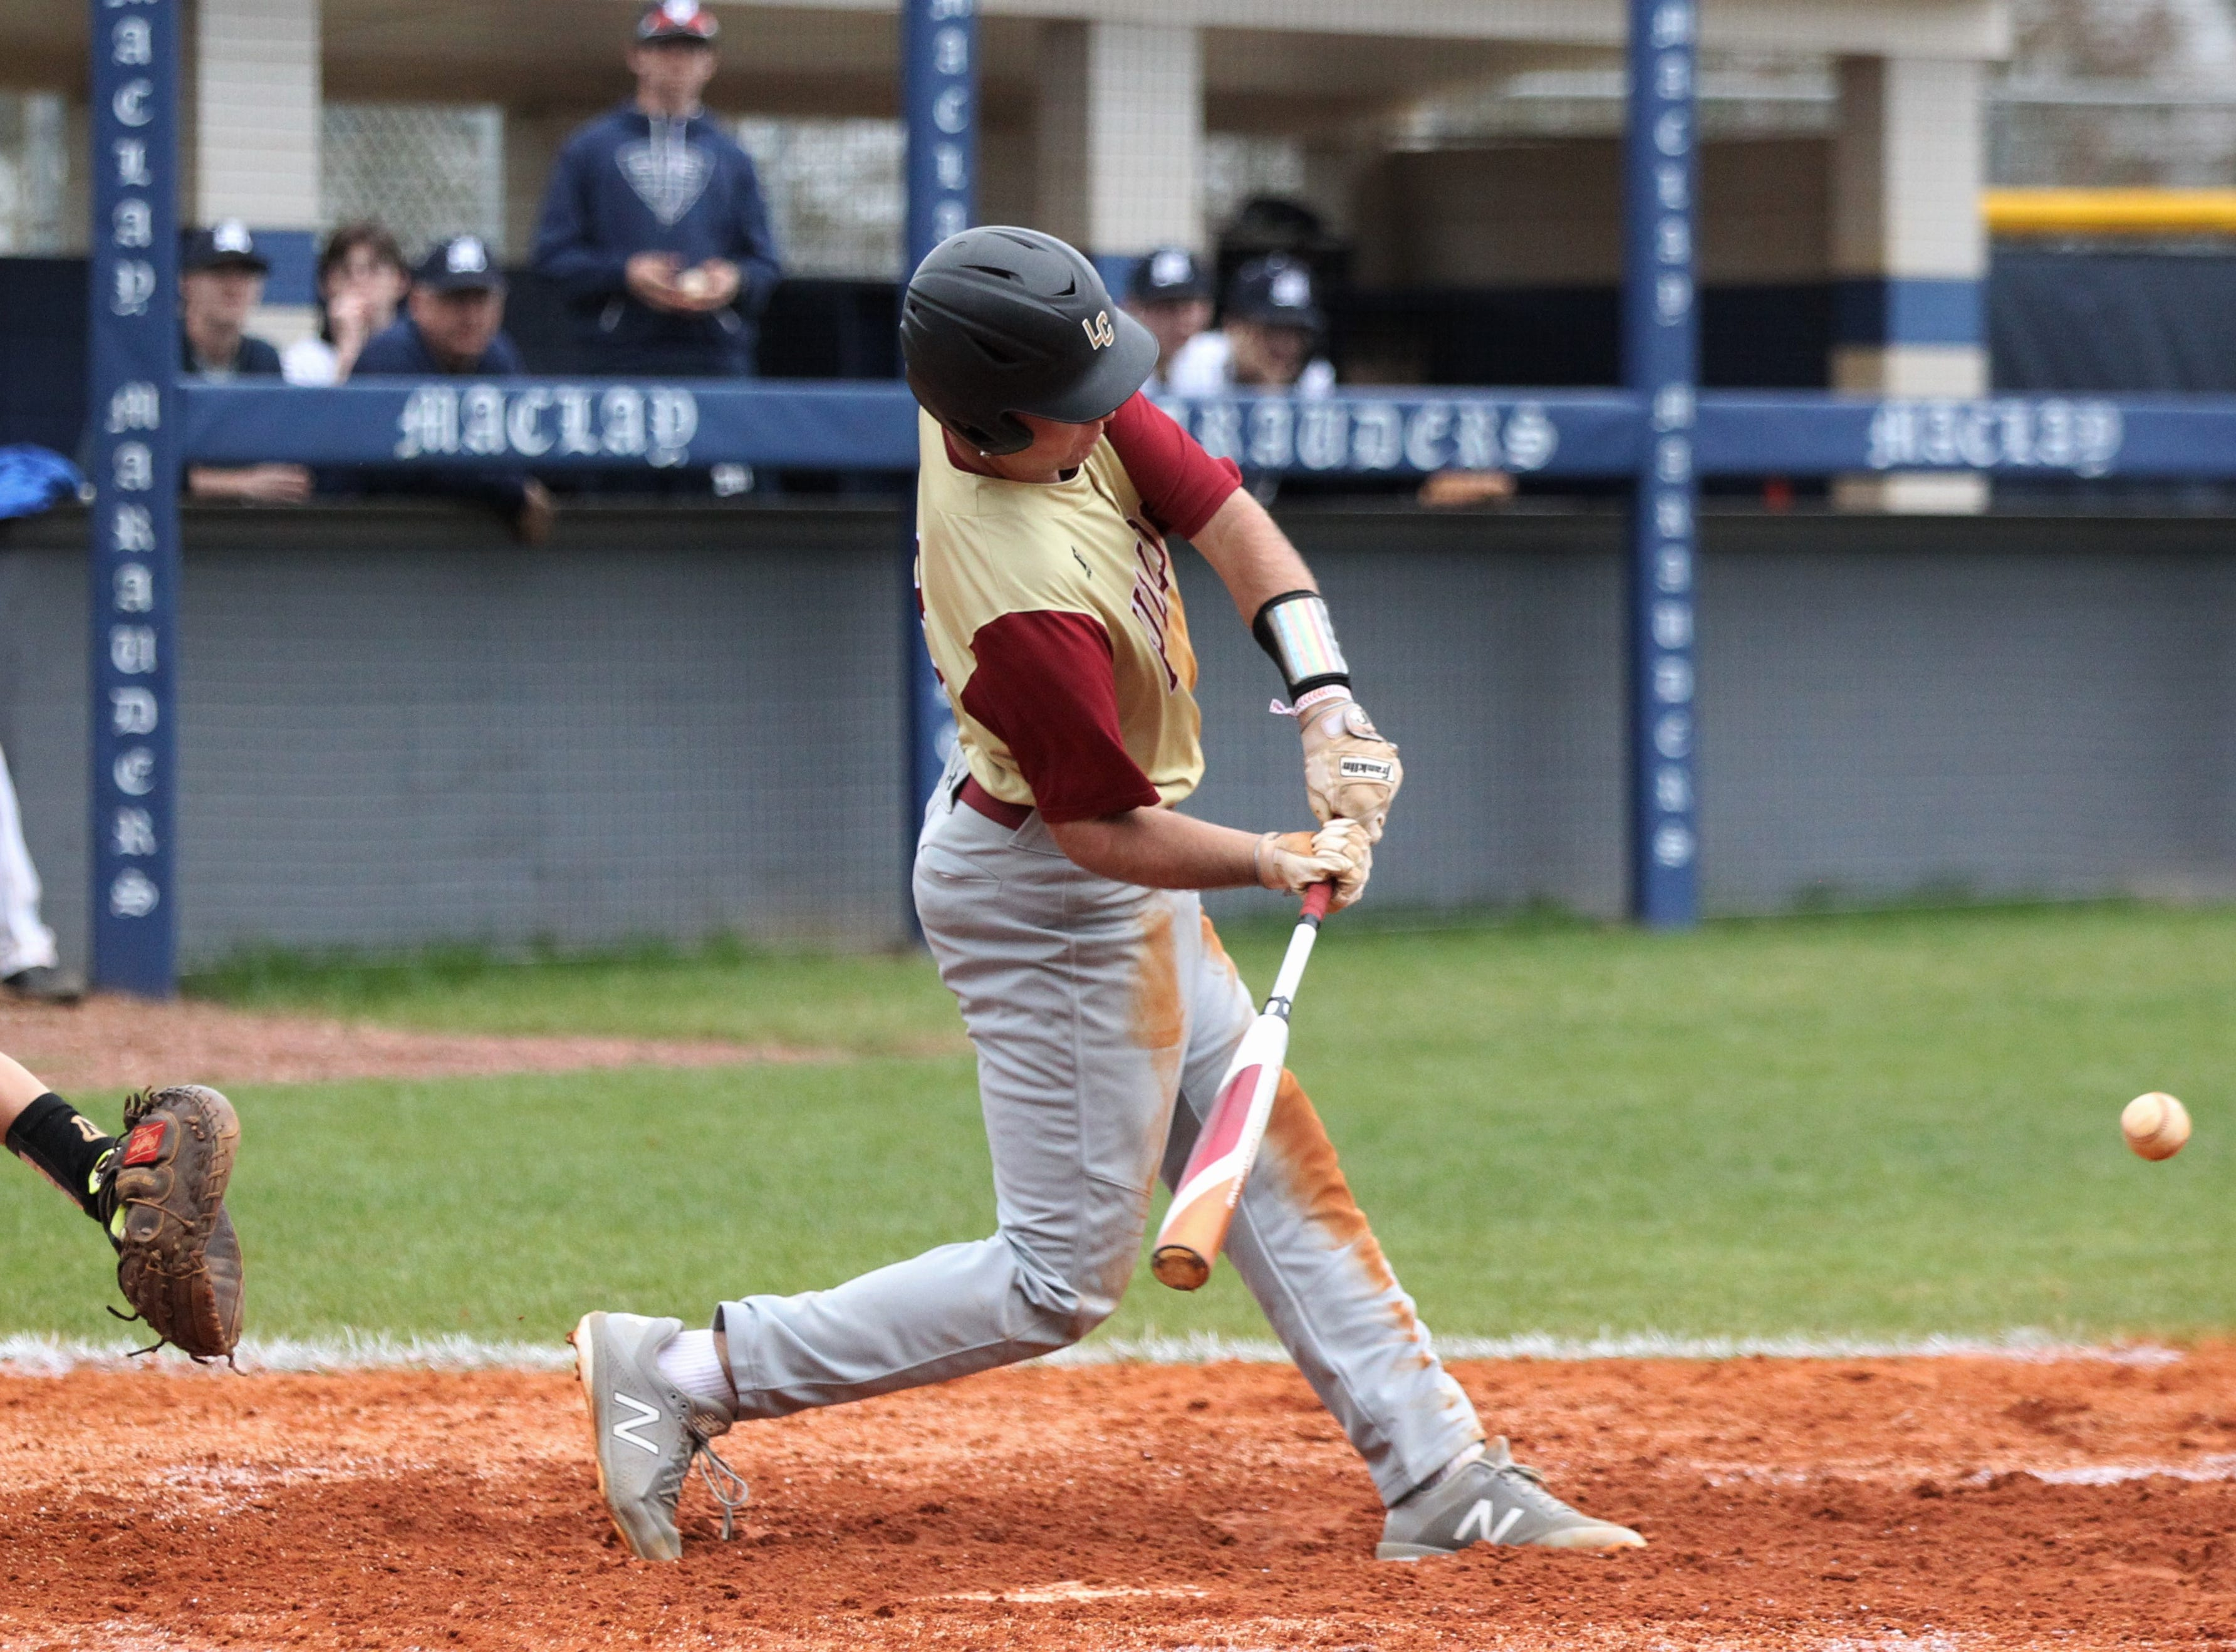 Liberty County's Ethan Grover swings at a pitch as Liberty County's baseball team went on the road to beat Maclay 8-2 on Saturday, March 16, 2019. The Bulldogs played their first game following their head coach Corey Crum's tragic death six days ago.